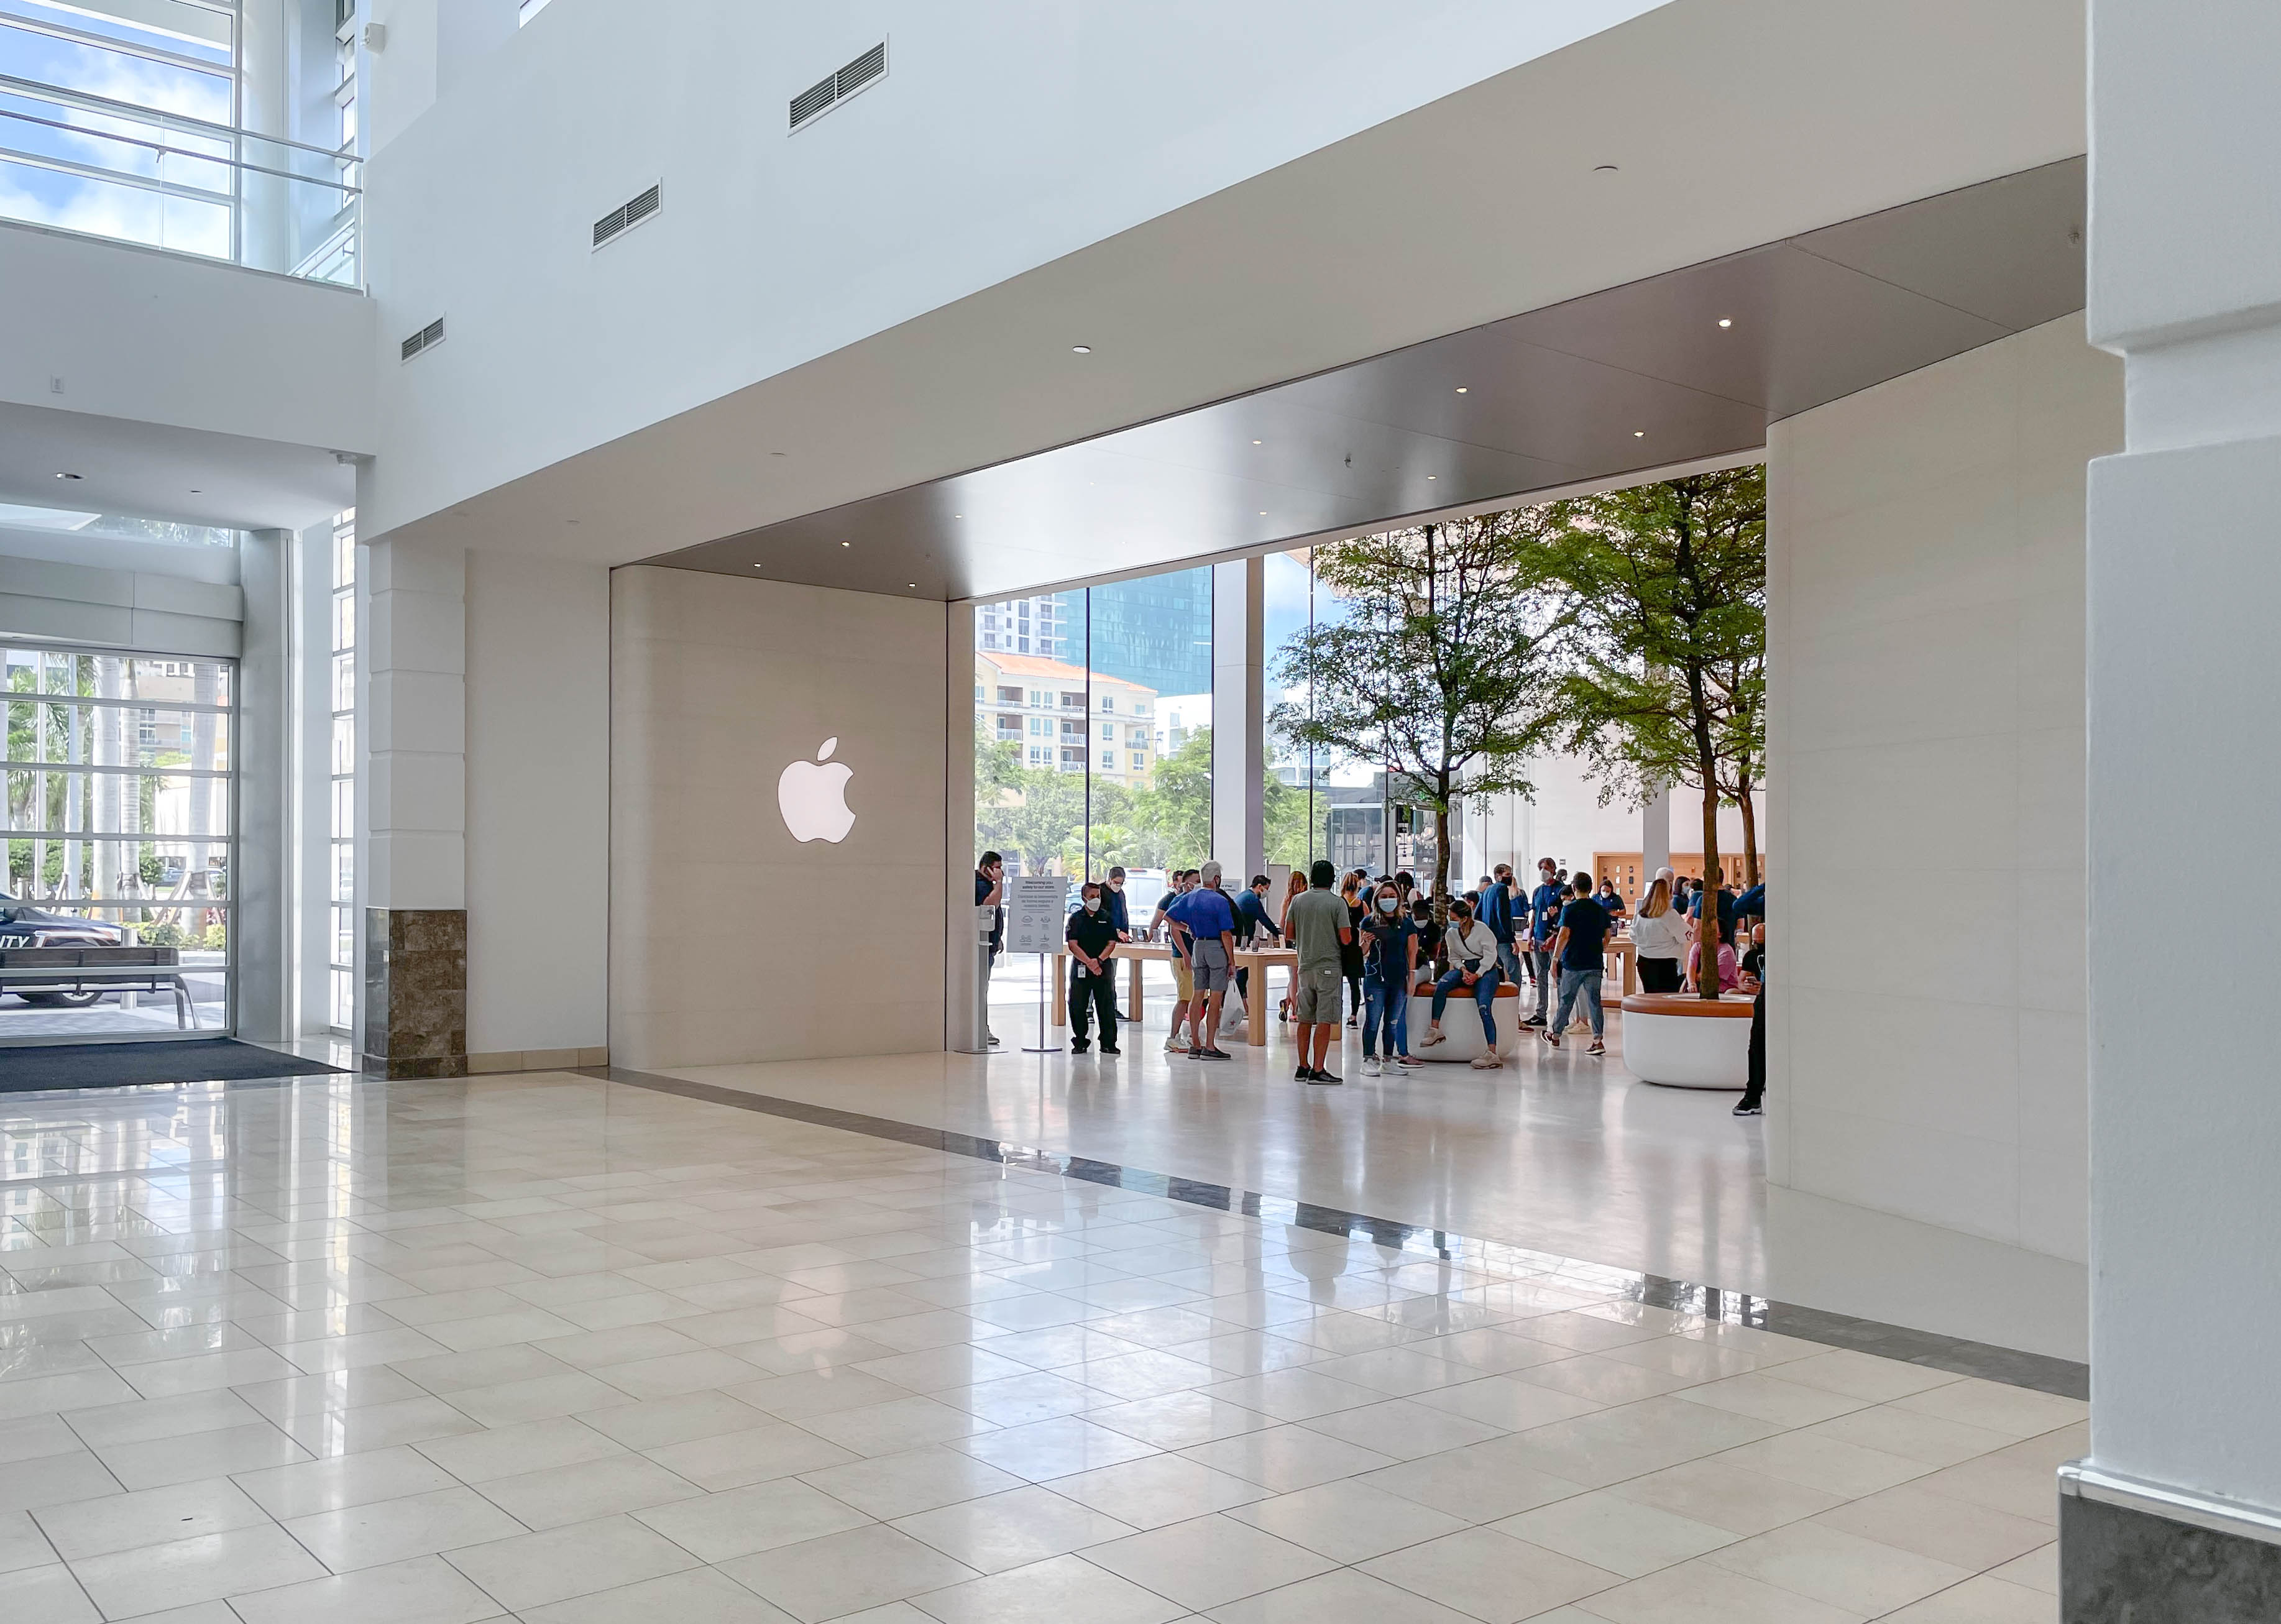 The mall entrance at Apple Dadeland.